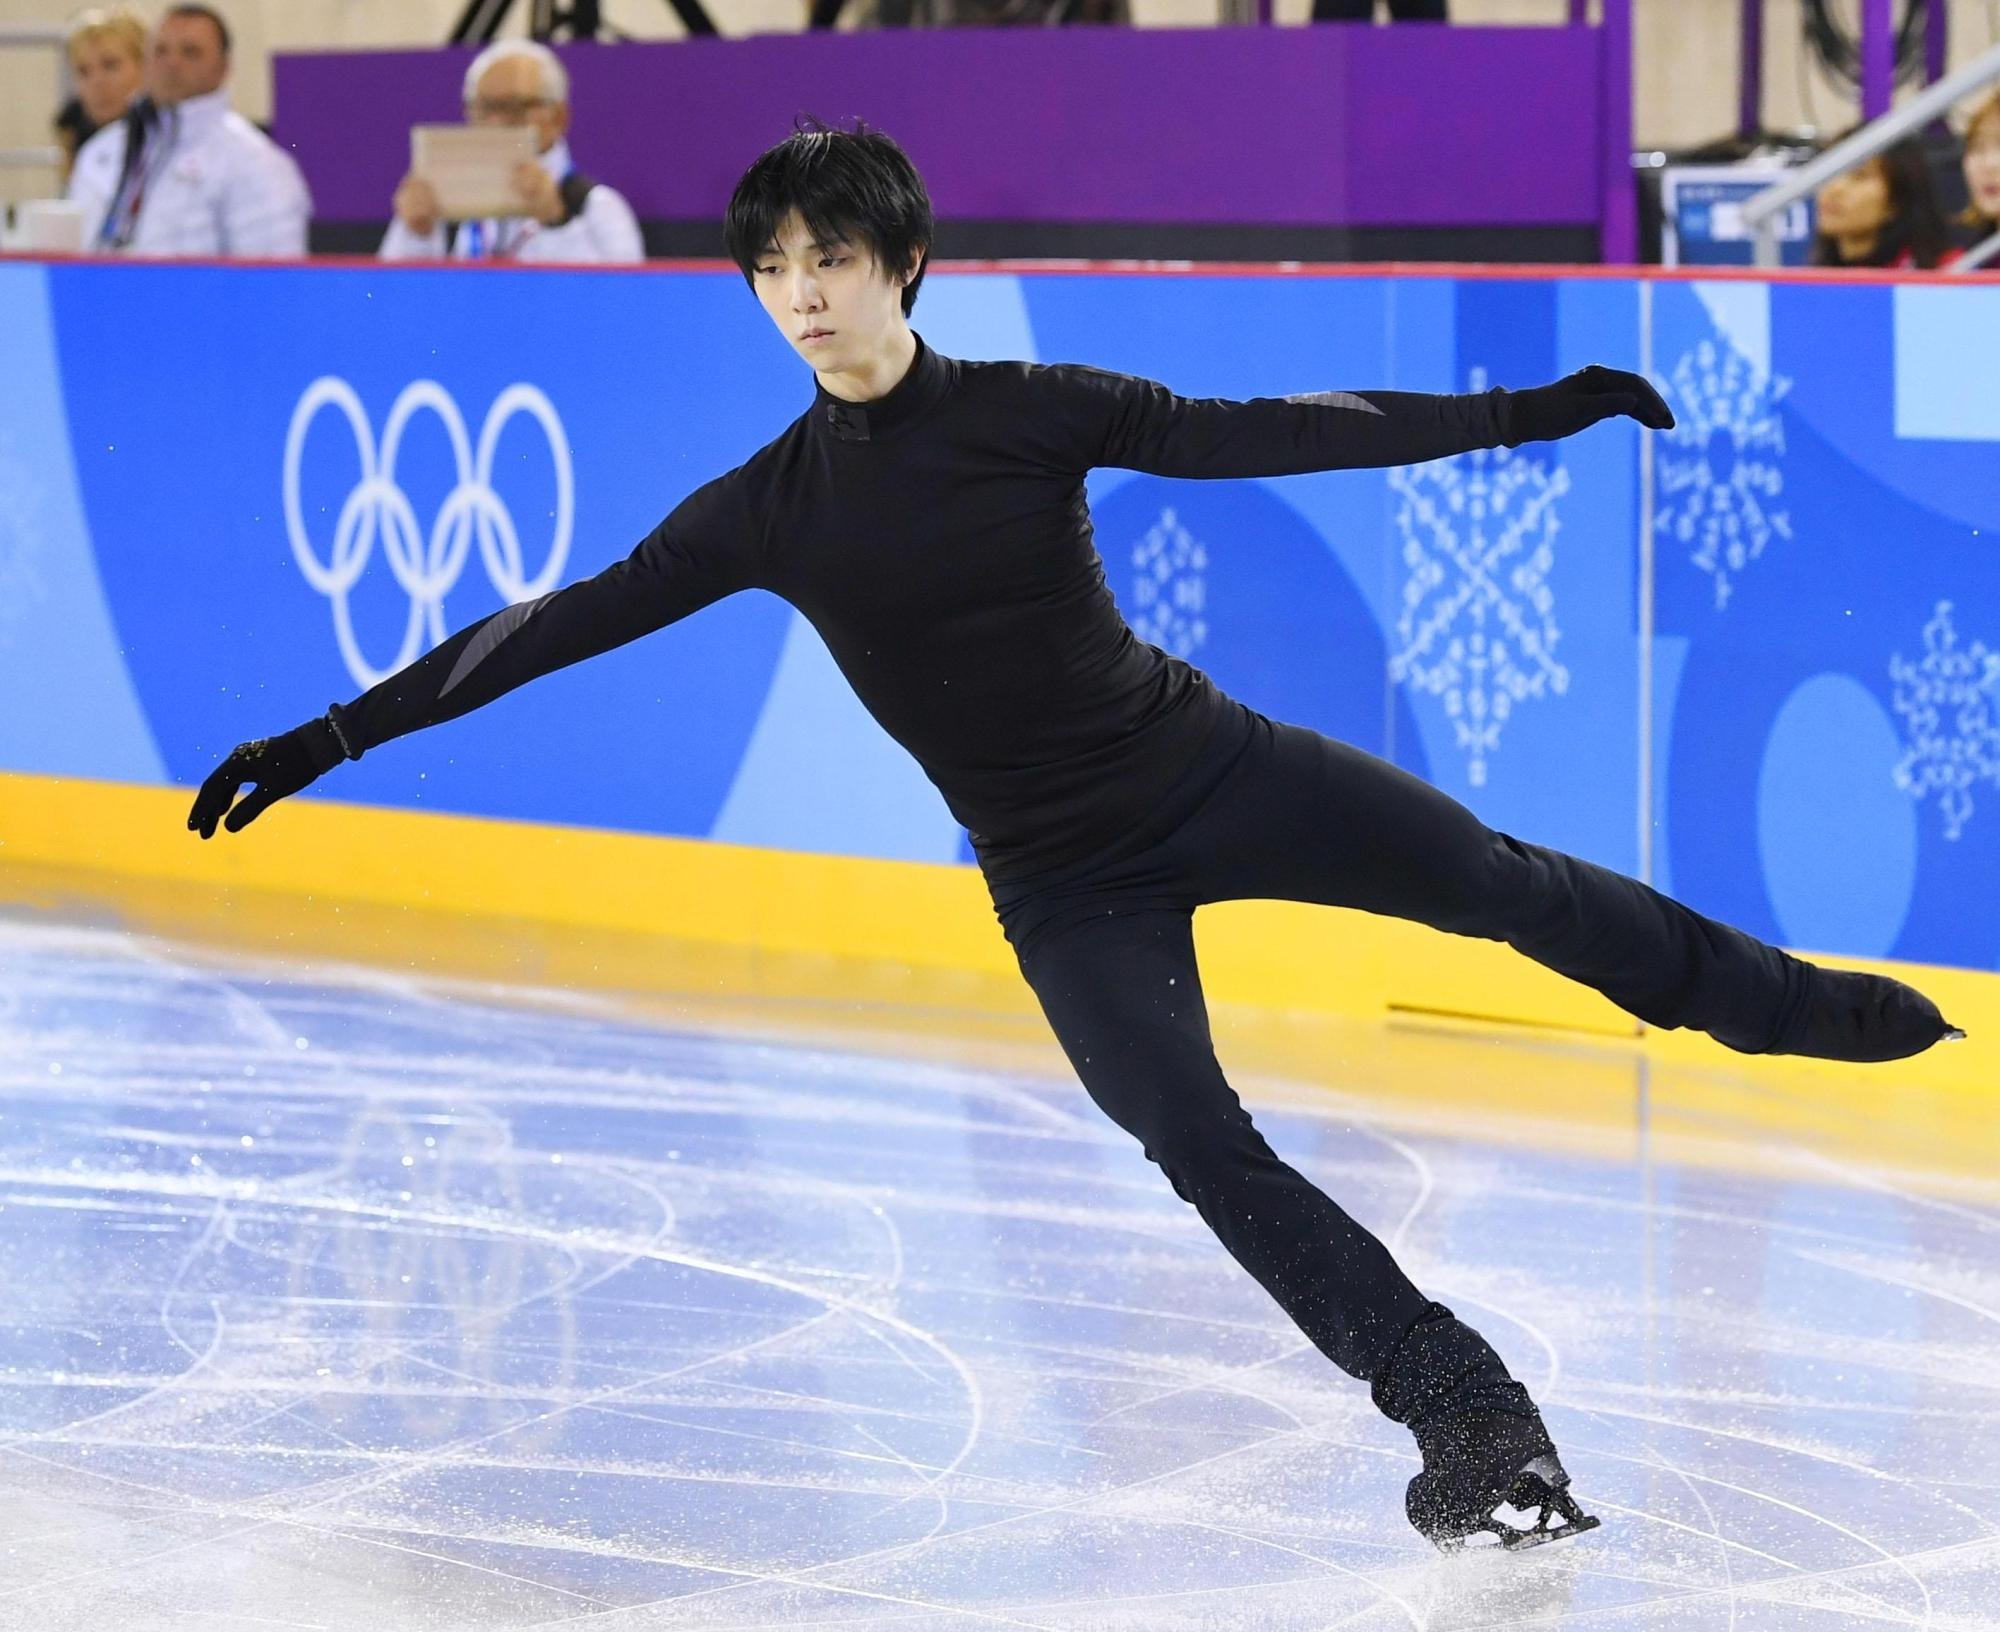 Yuzuru Hanyu works out on the practice rink at Gangneung Ice Arena on Monday in Gangneung, South Korea. | KYODO